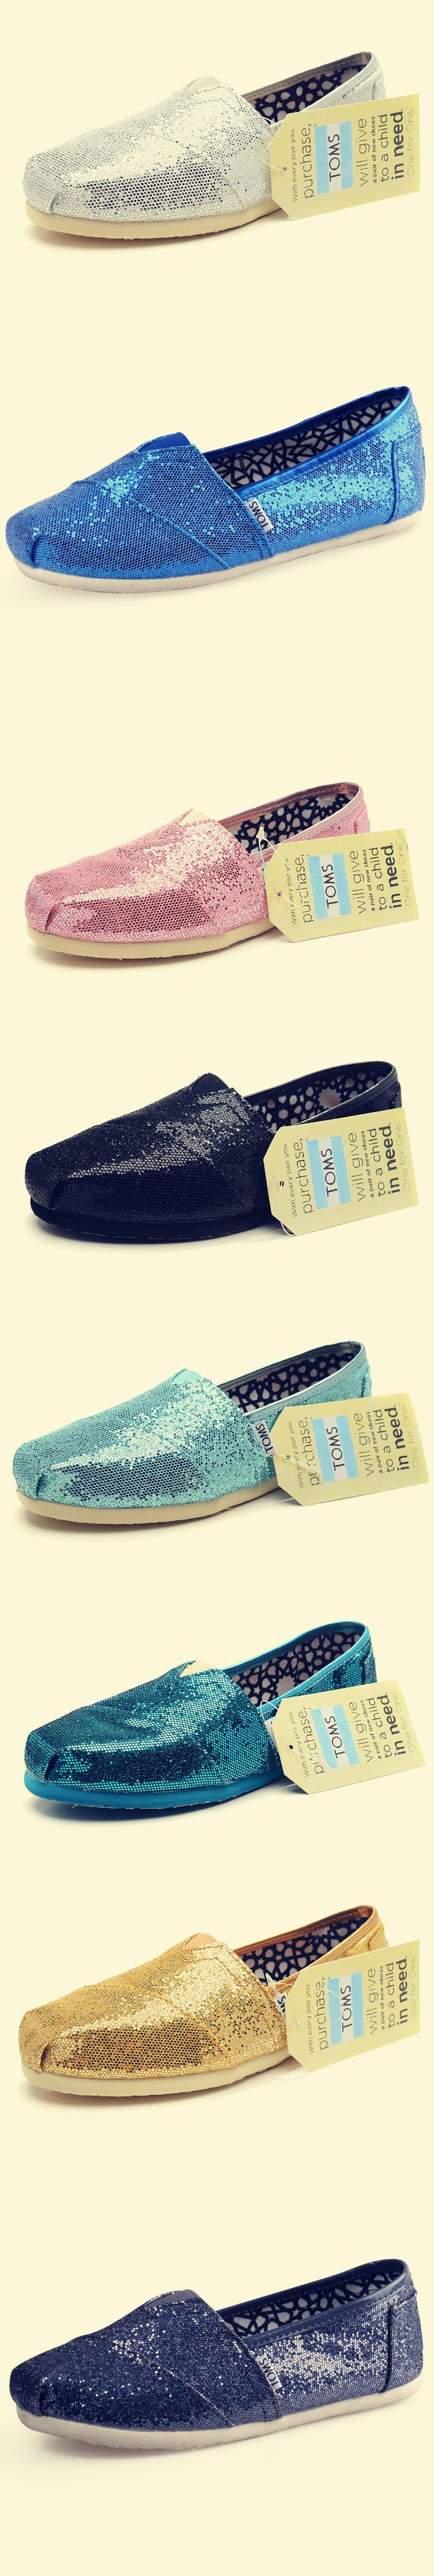 I keep finding such awesome items and brands for such a great price!Toms Shoes